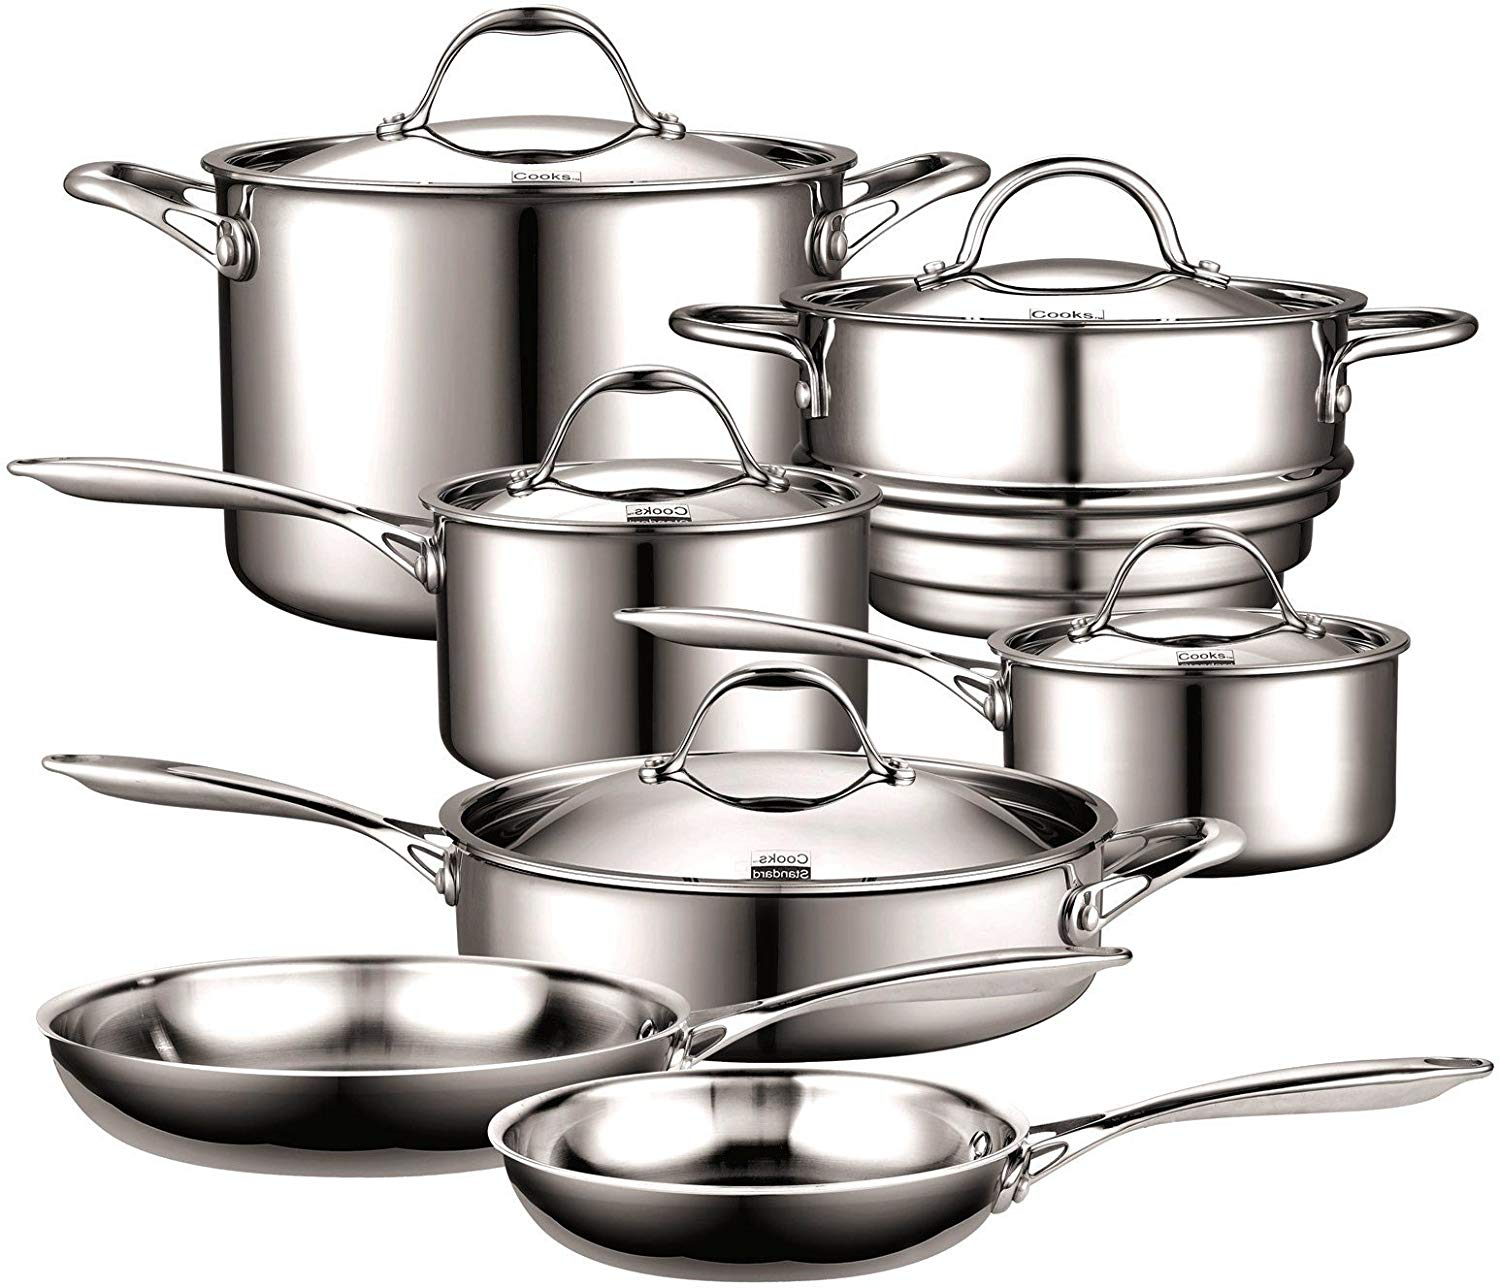 Cooks Standard NC-00232 Multi-Ply Cookware Set